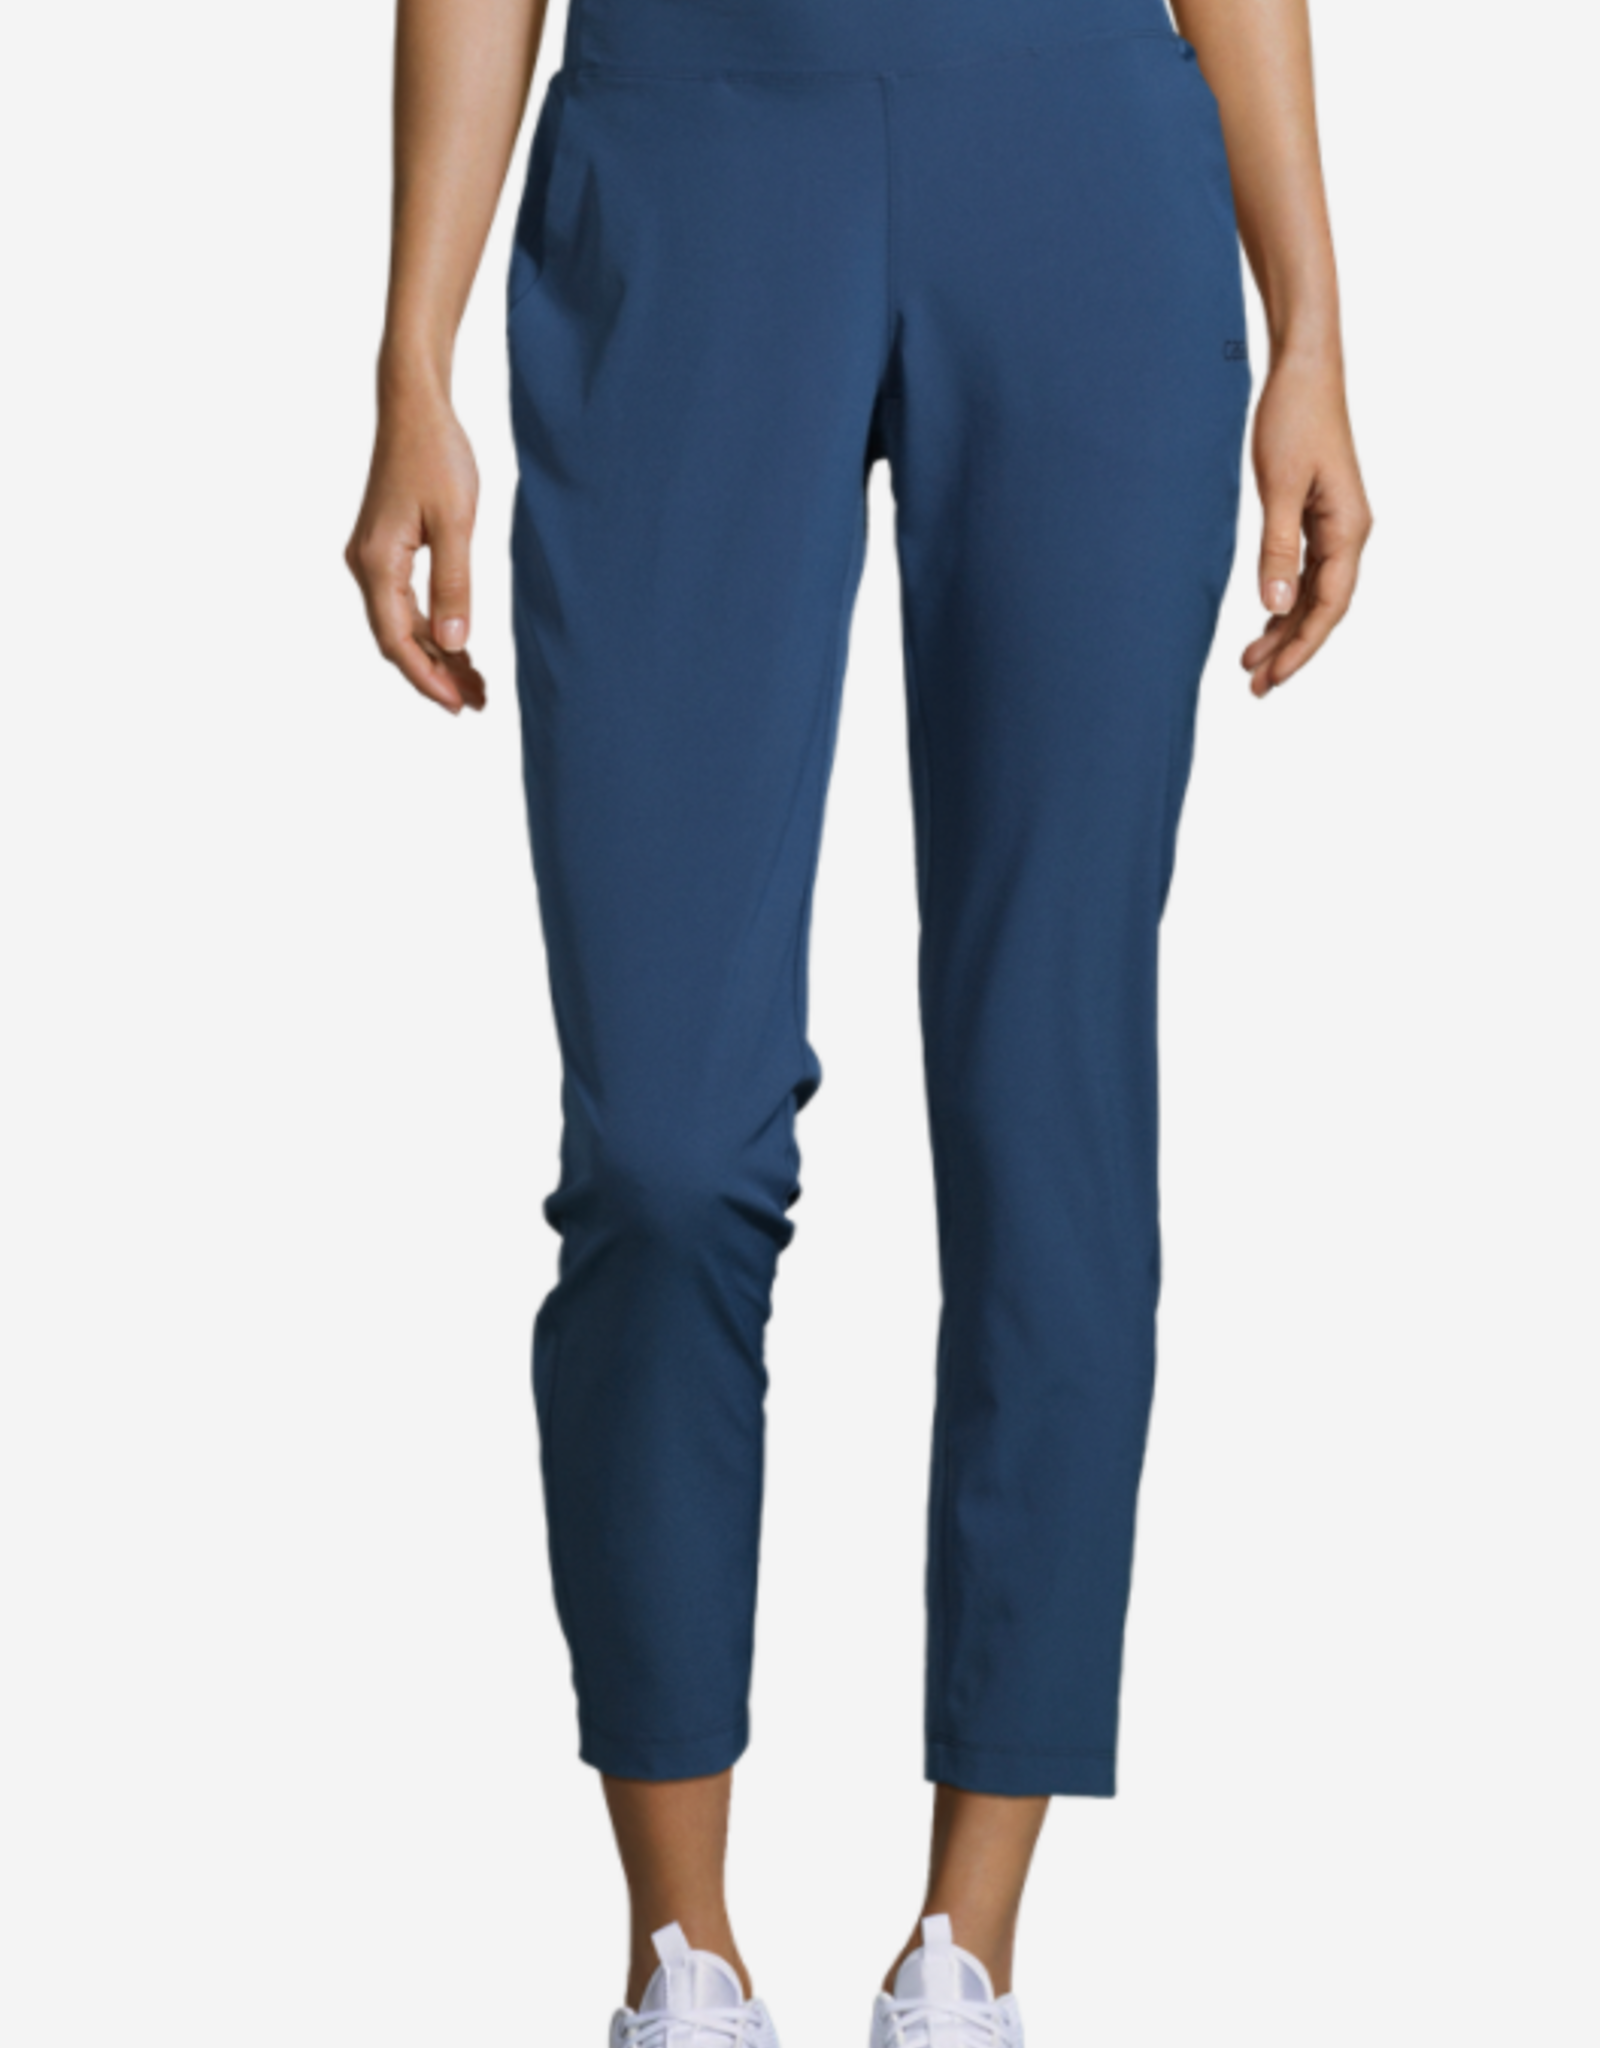 Casall Essential slim woven pants dames (ref 20658)